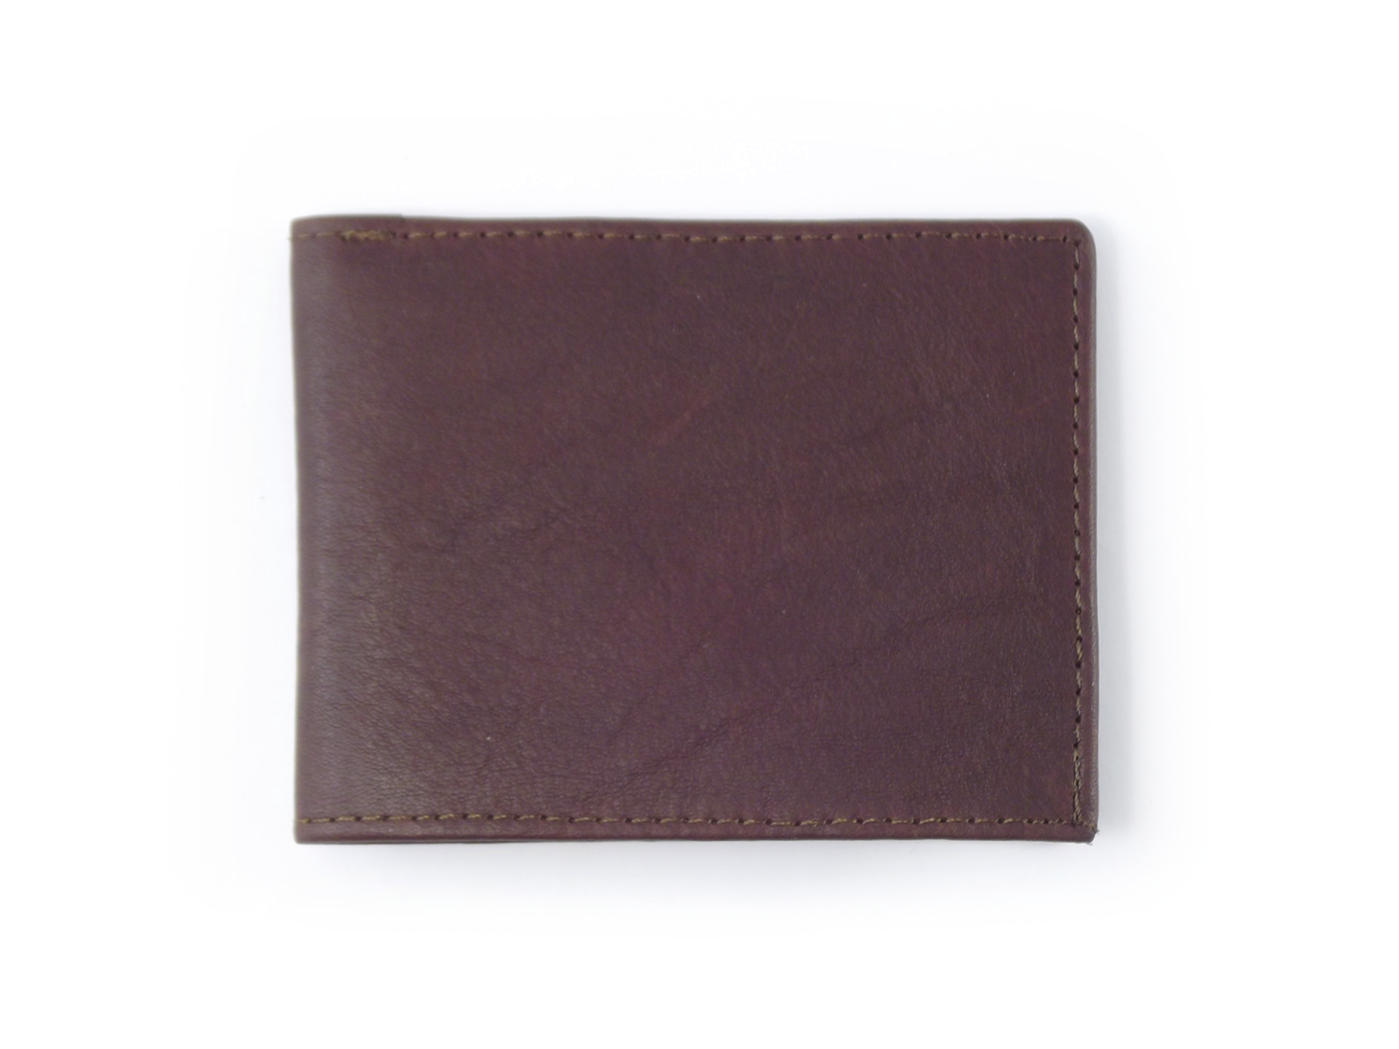 wallet 6 cards hpmw22ntku mens leather business card holder by der lederhandler - Leather Business Card Holder